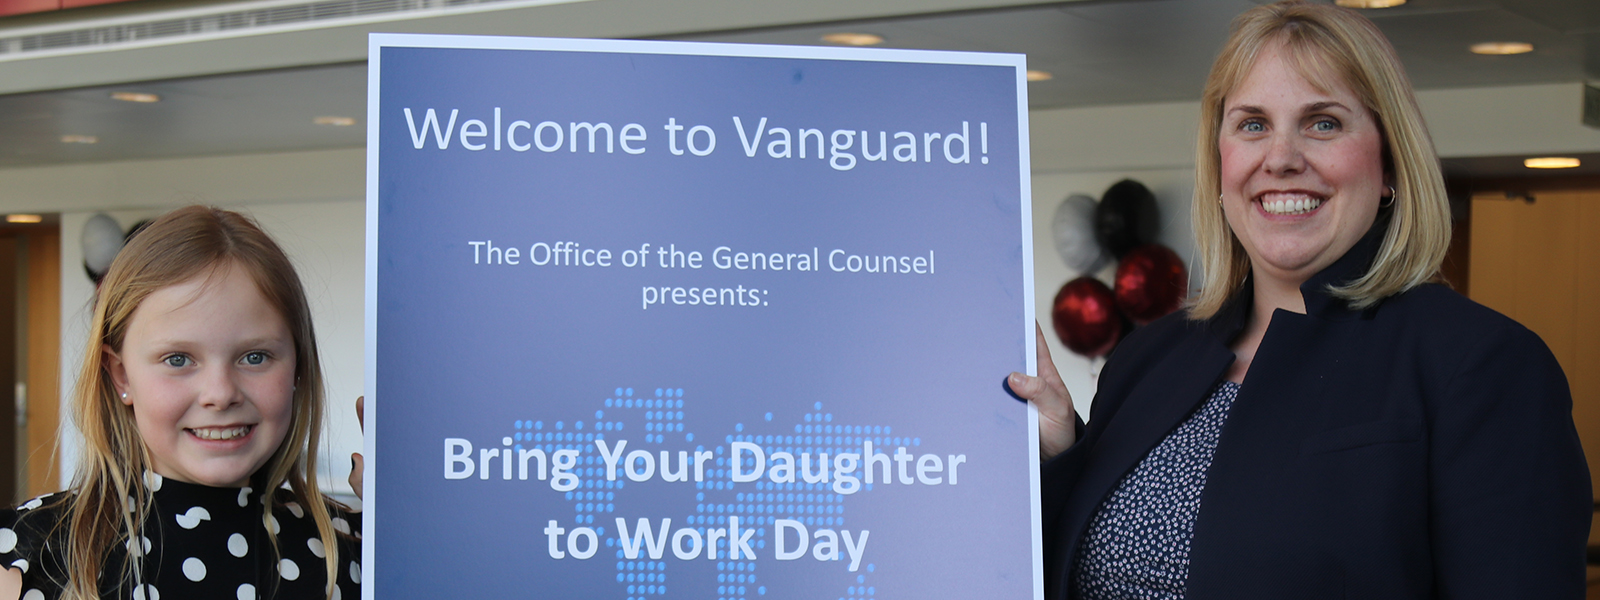 Vanguard take your daughter to work day